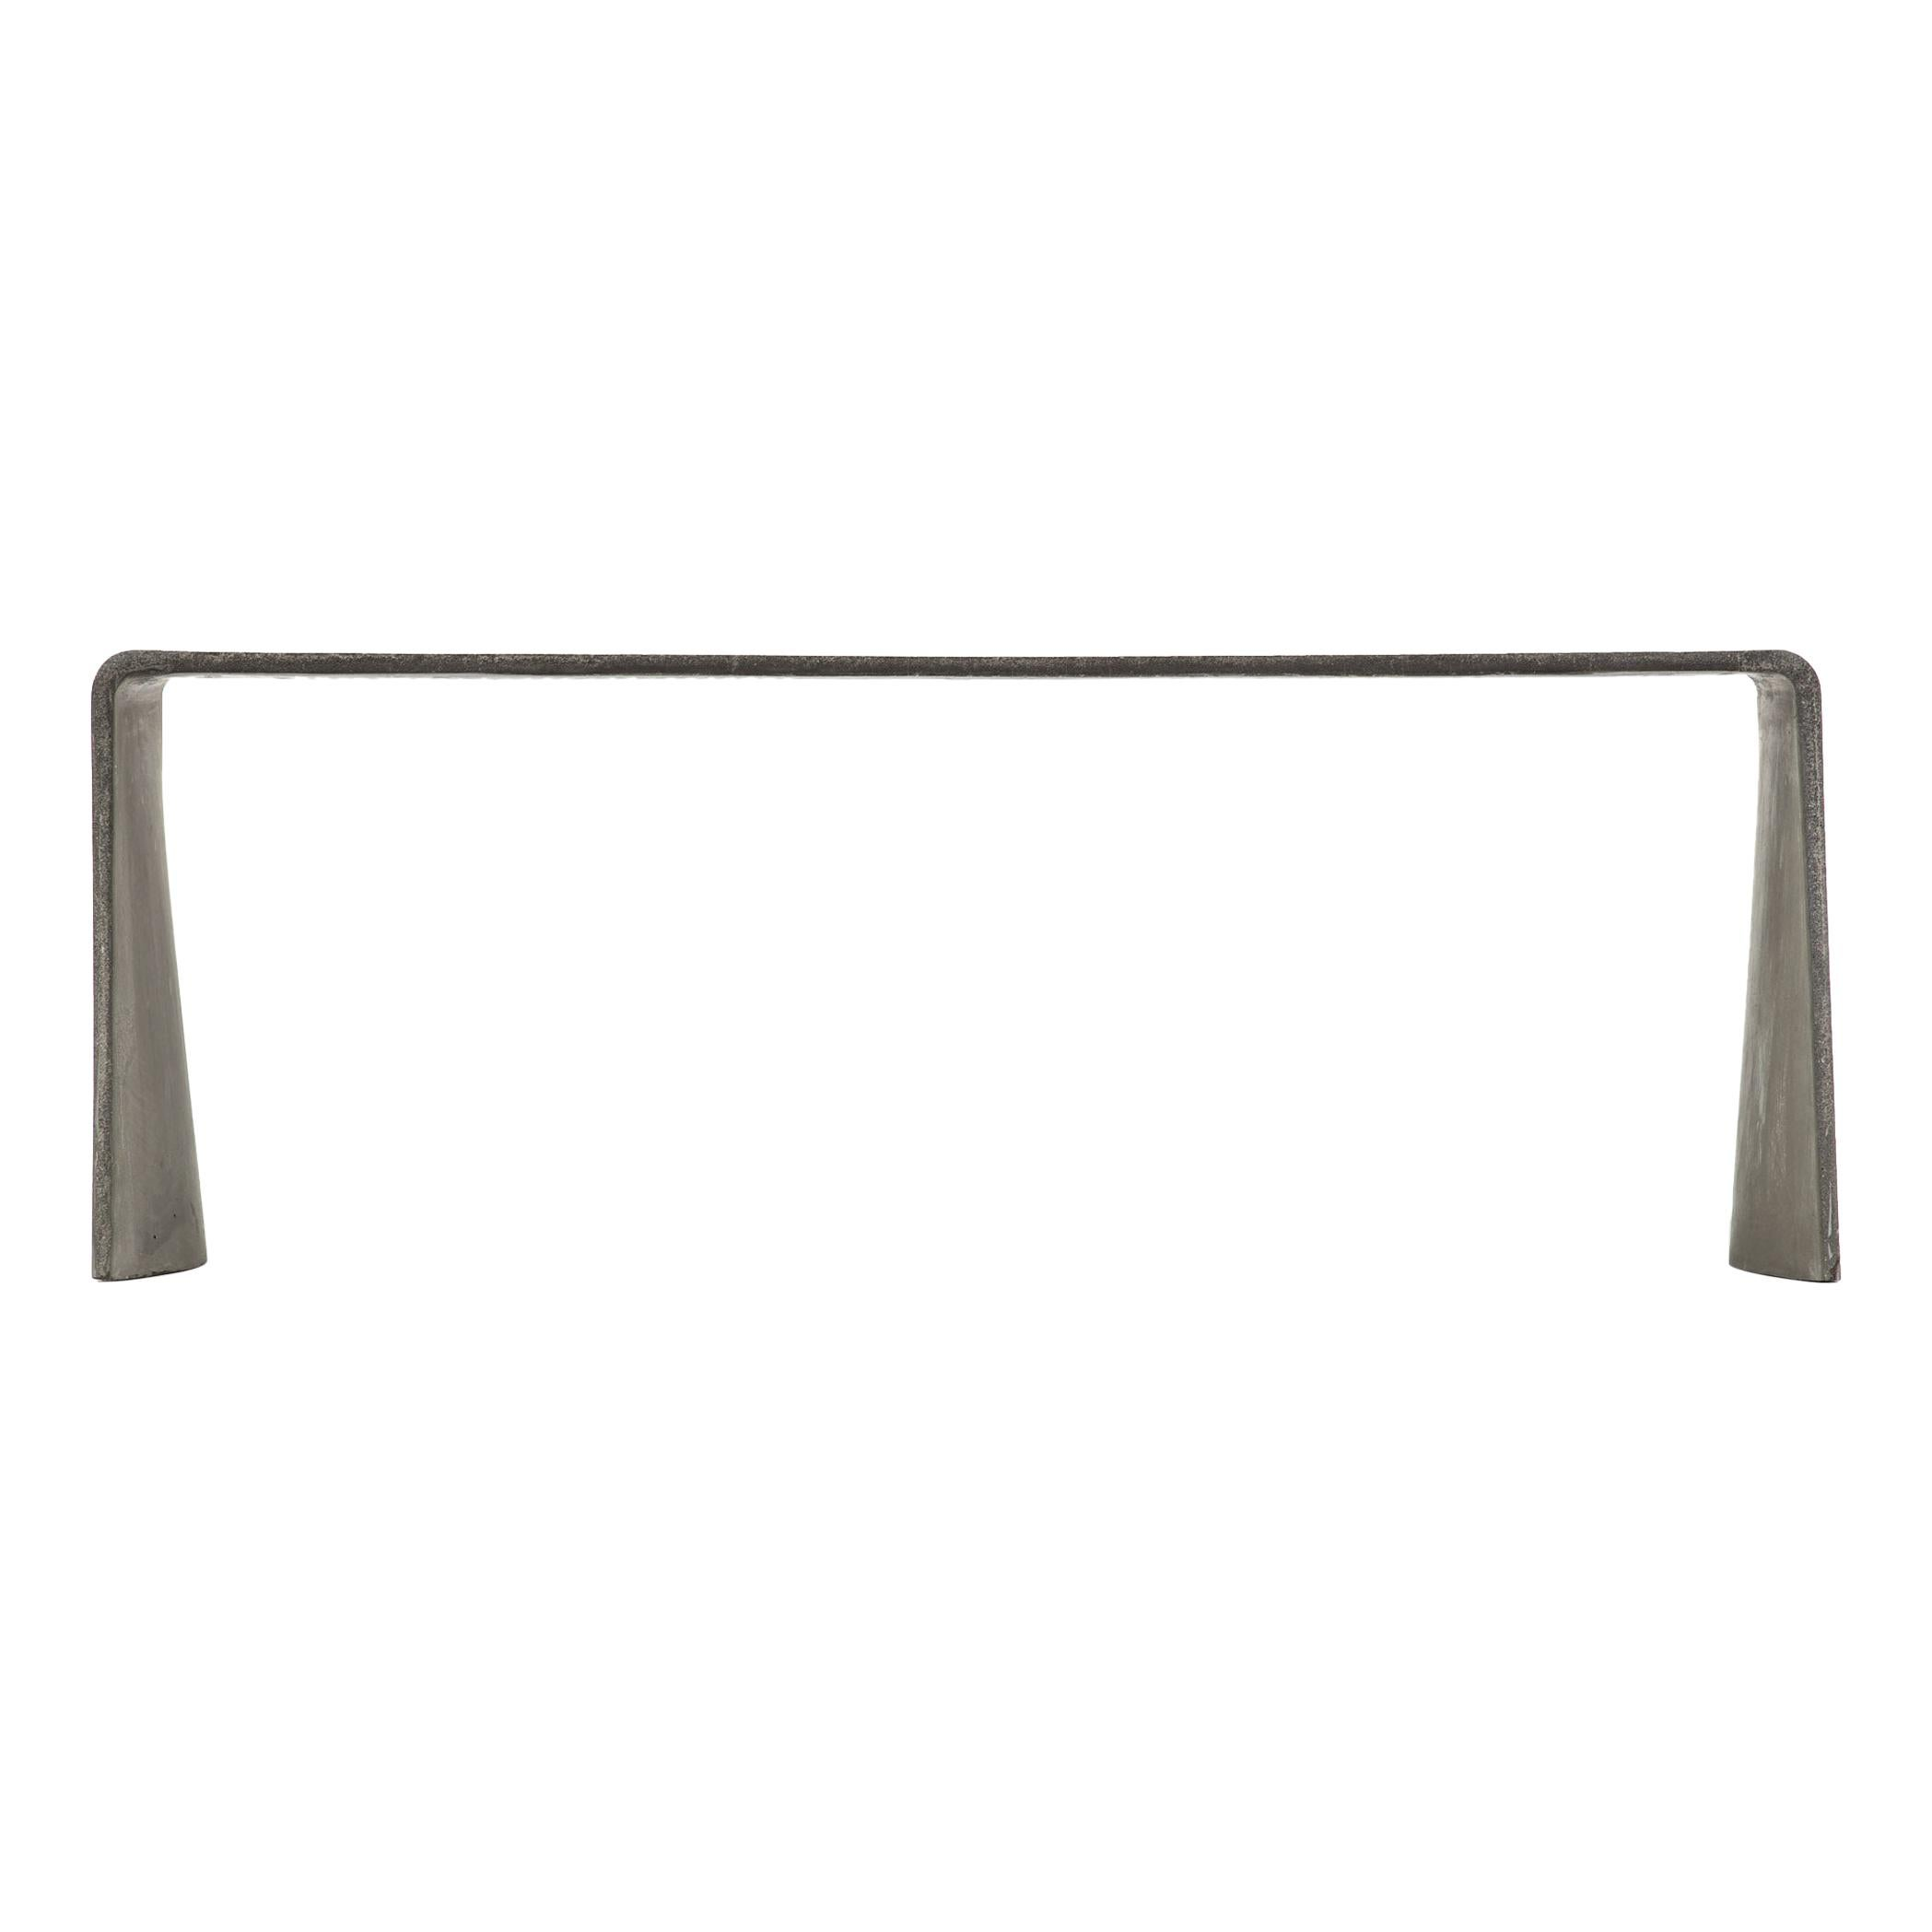 Tadao 120 Concrete Contemporary Low Console Table, 100% Handcrafted in Italy